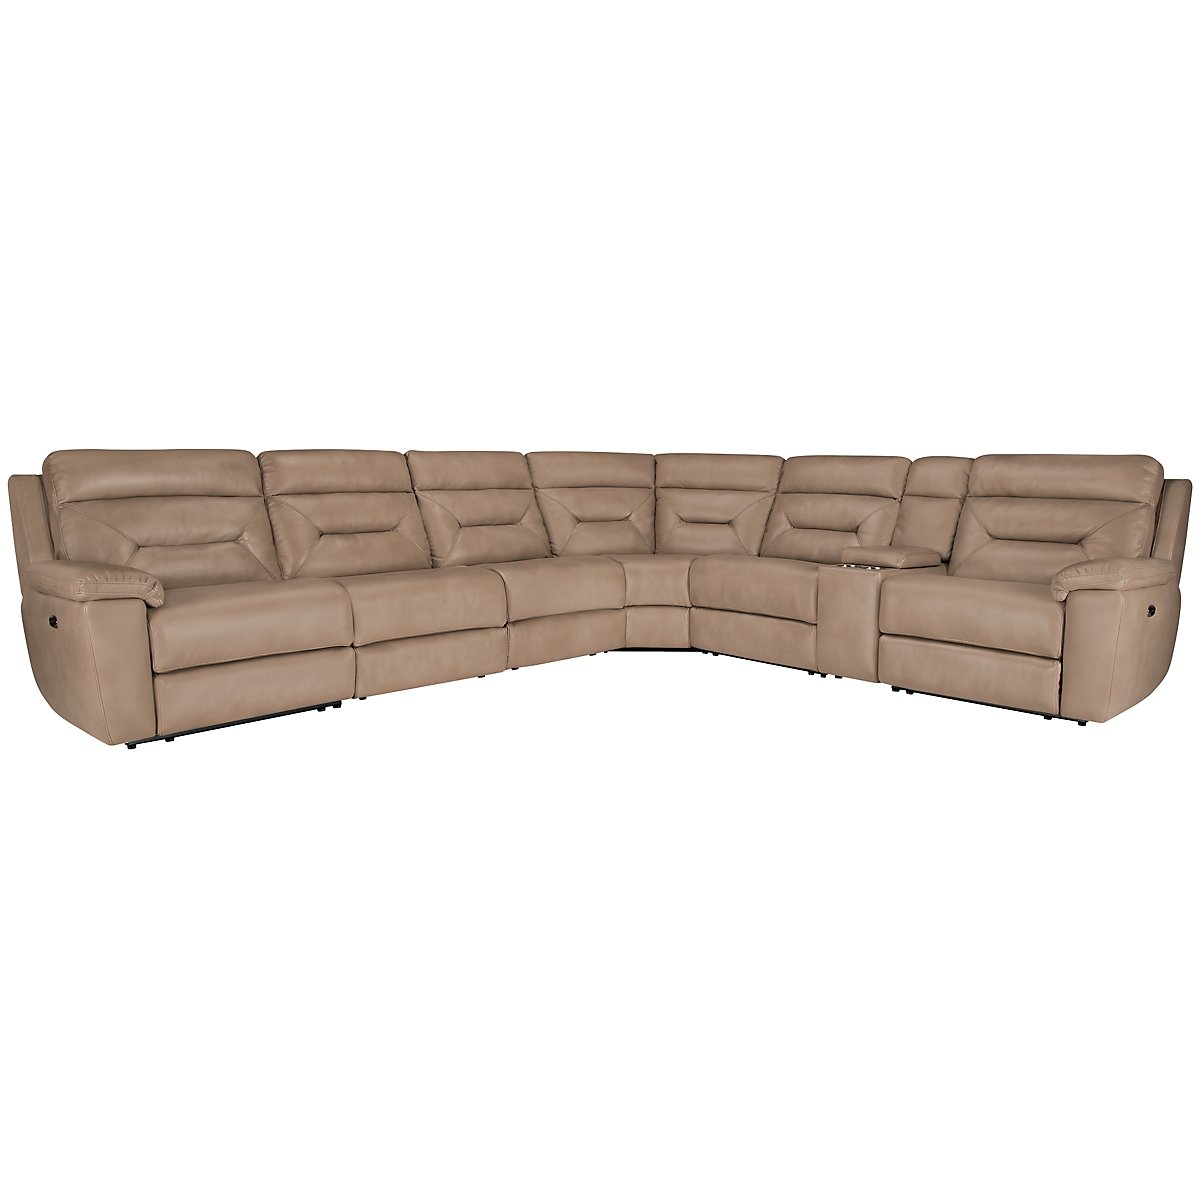 Phoenix Dk Beige Microfiber Large Two-Arm Power Reclining Sectional